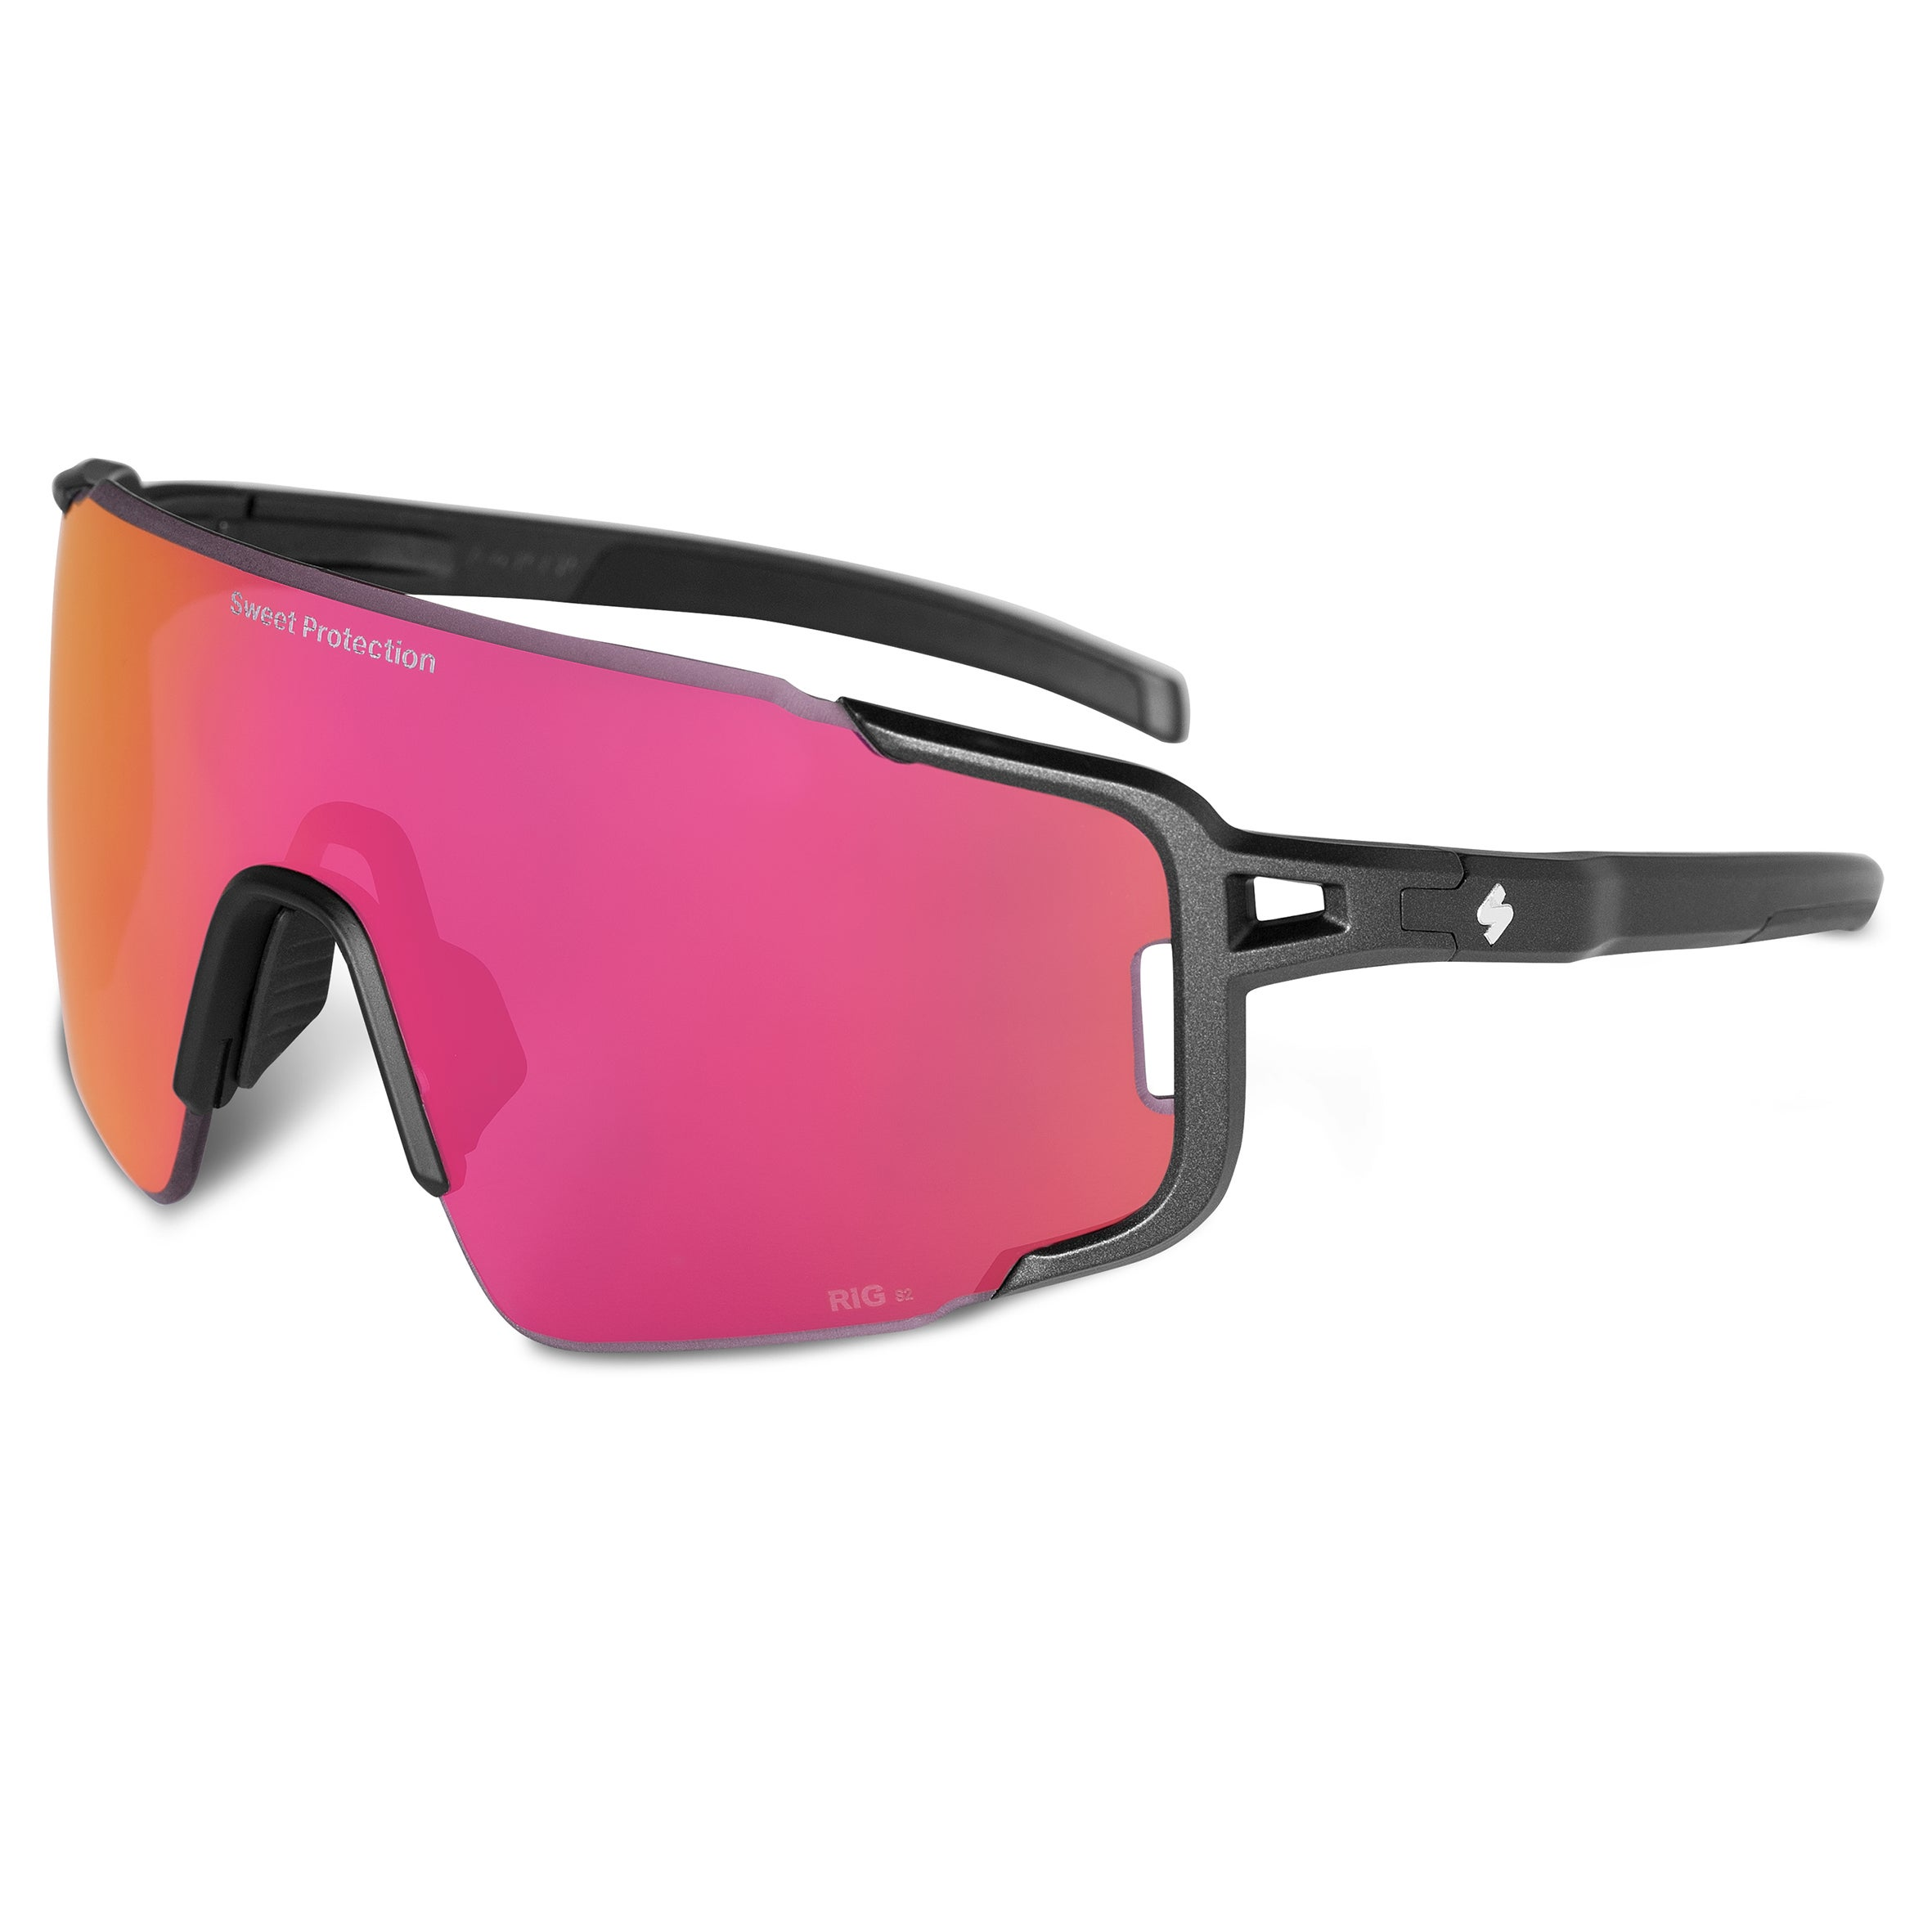 Sweet Protection Ronin Max RIG sunglasses.